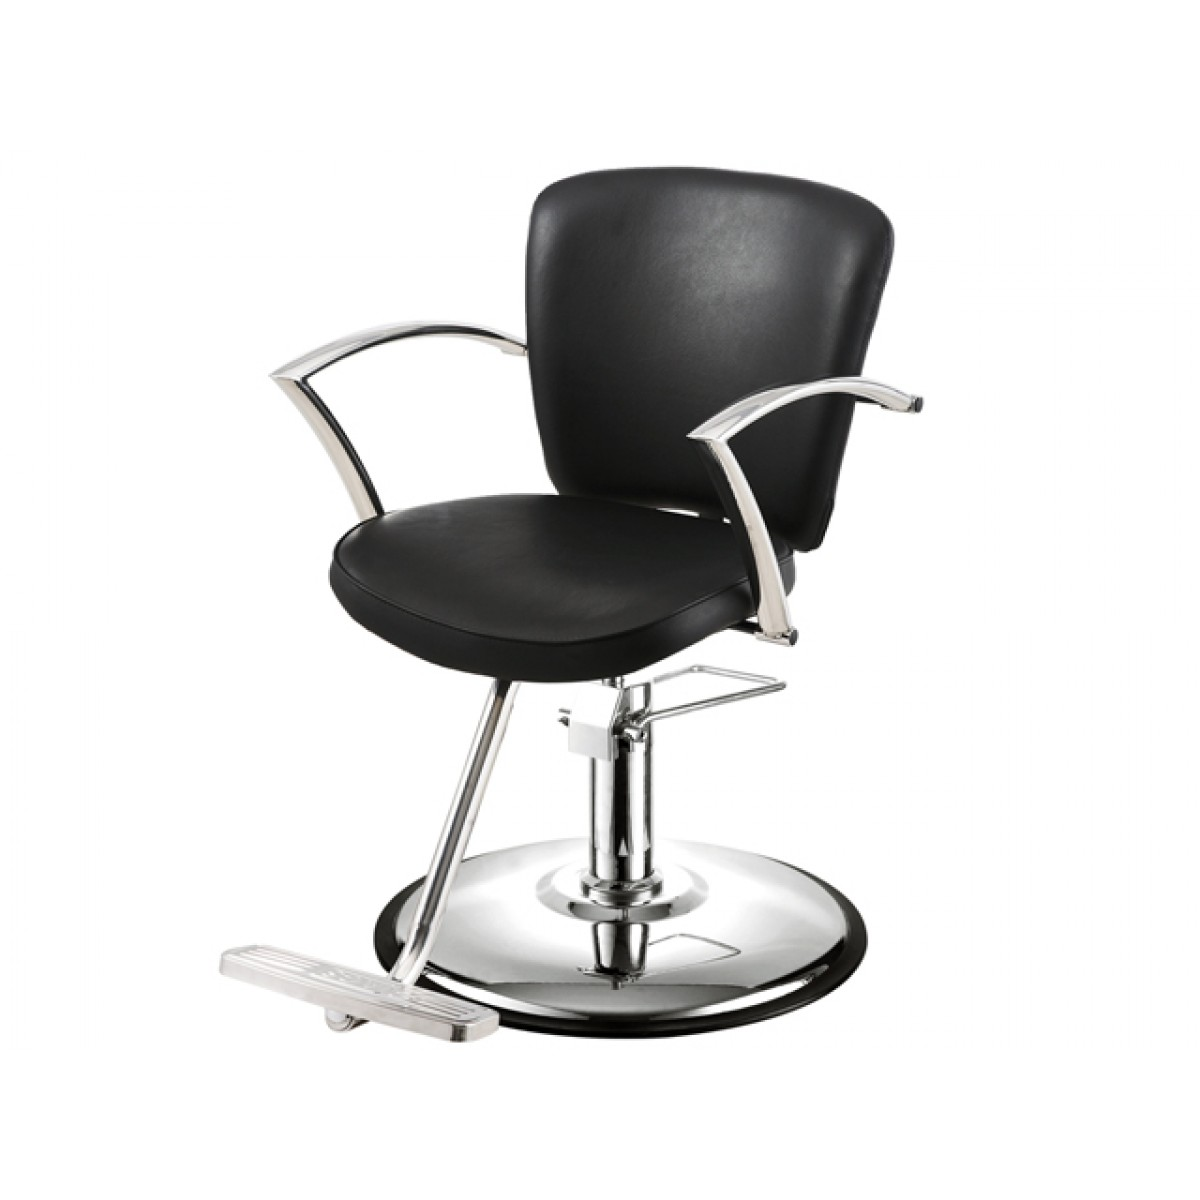 New York Salon Chair Salon Equipment Salon Furniture Chairs Wholesale In Nyc